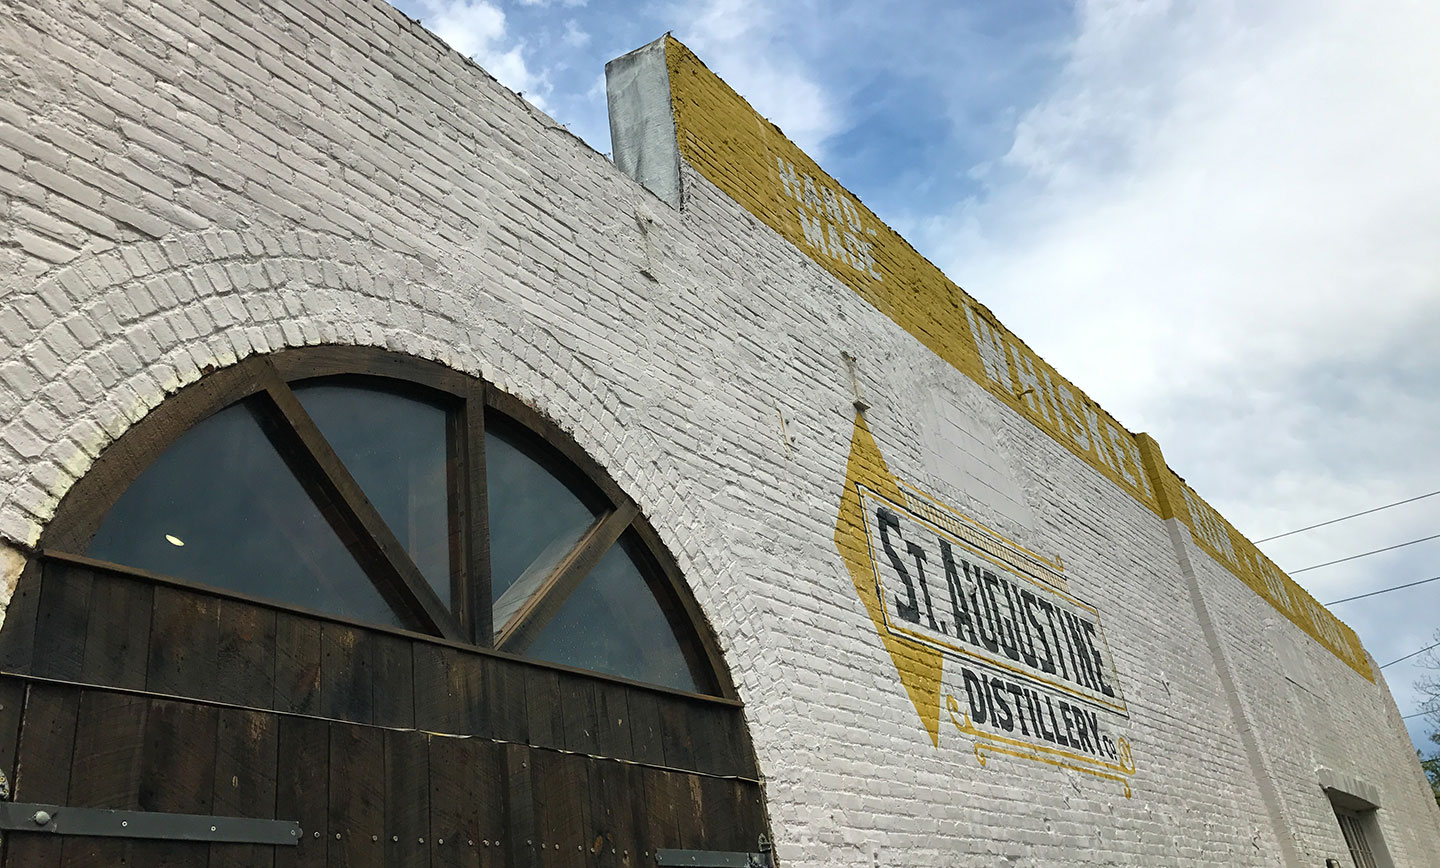 List of Fun Things To Do In St. Augustine, Florida - Saint Augustine Distillery